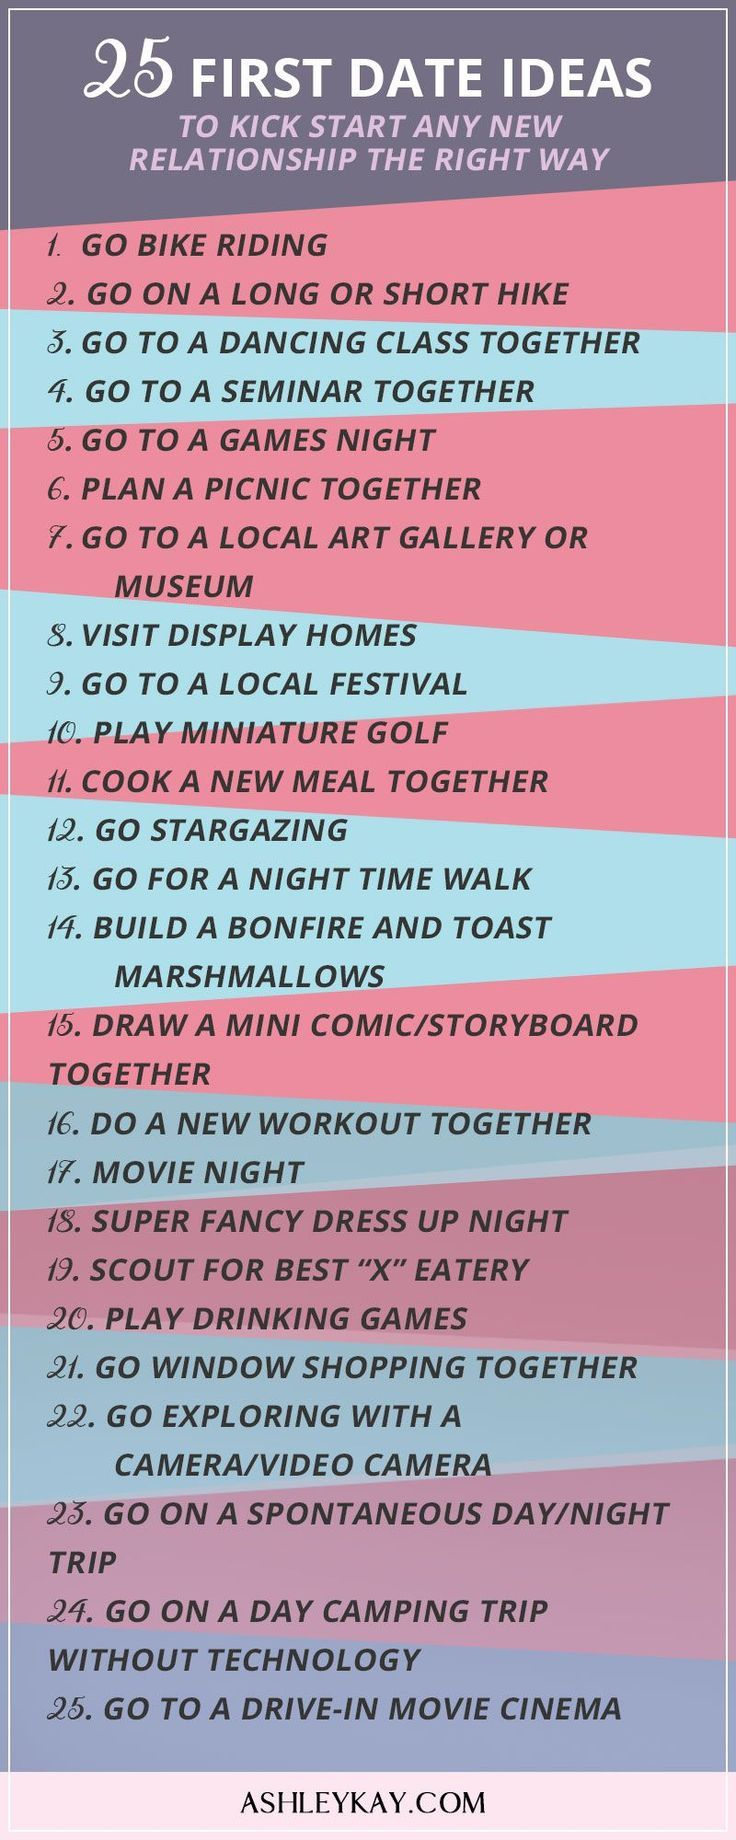 Unique ideas for a first date